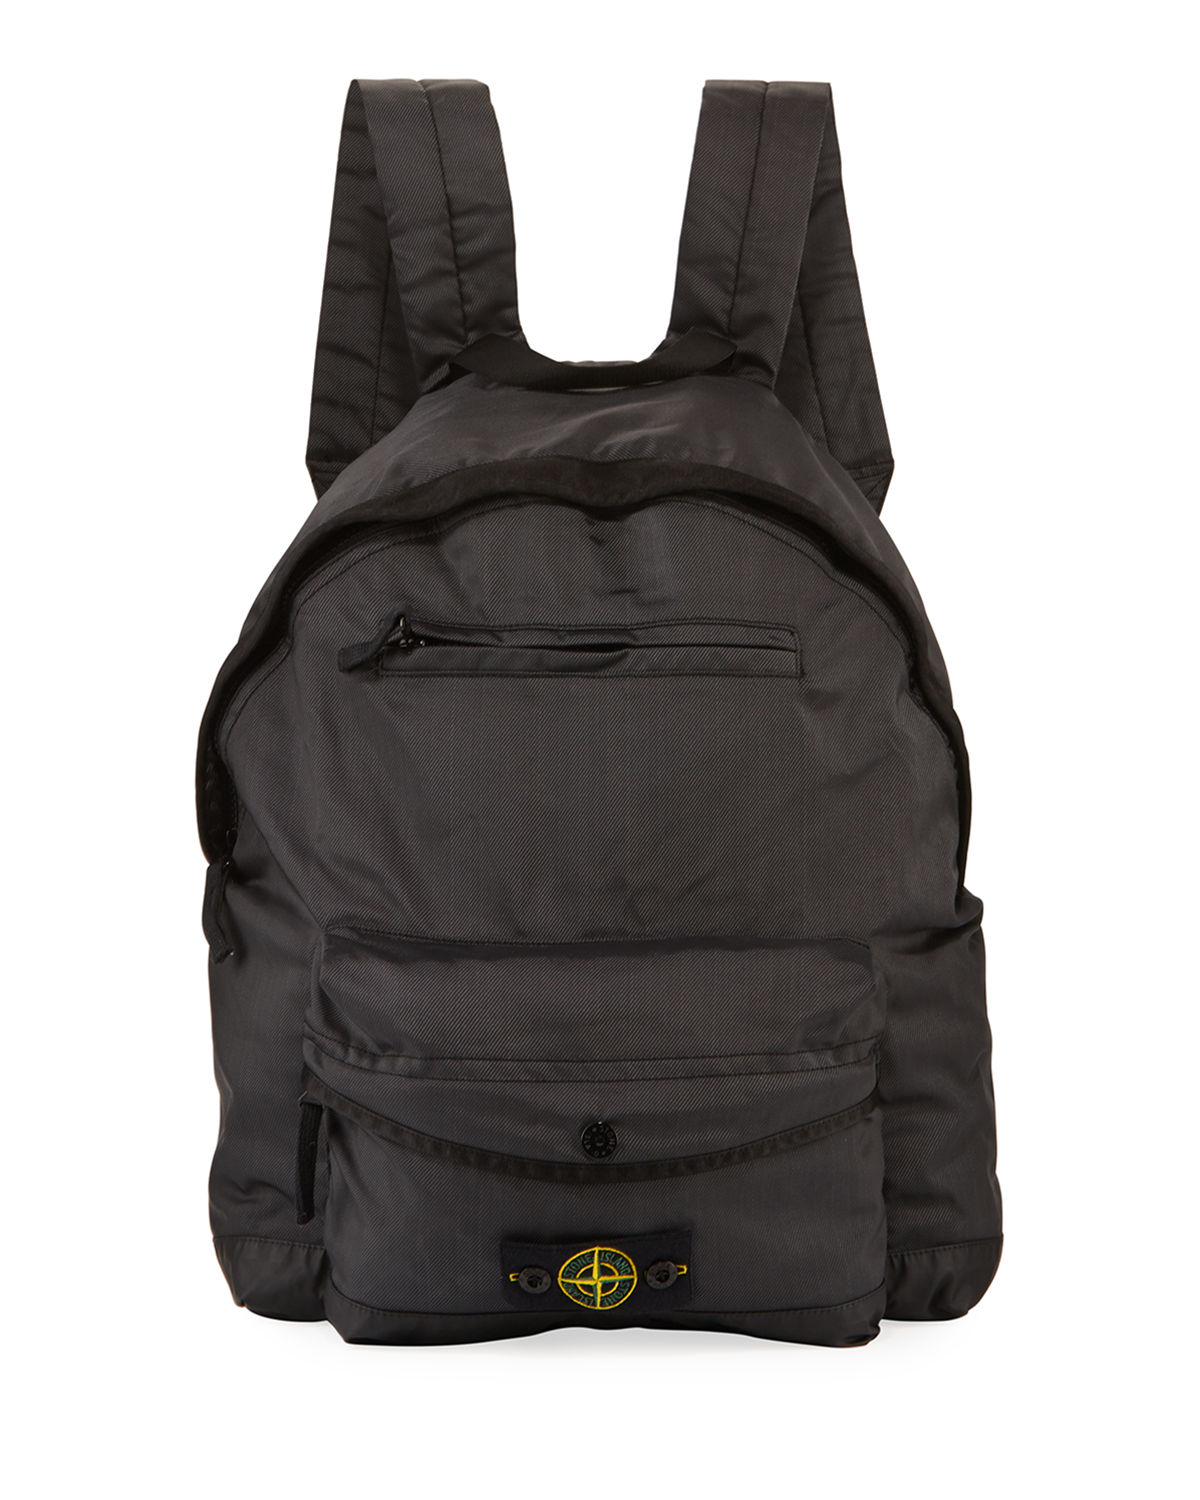 Stone Island KID'S NYLON BACKPACK